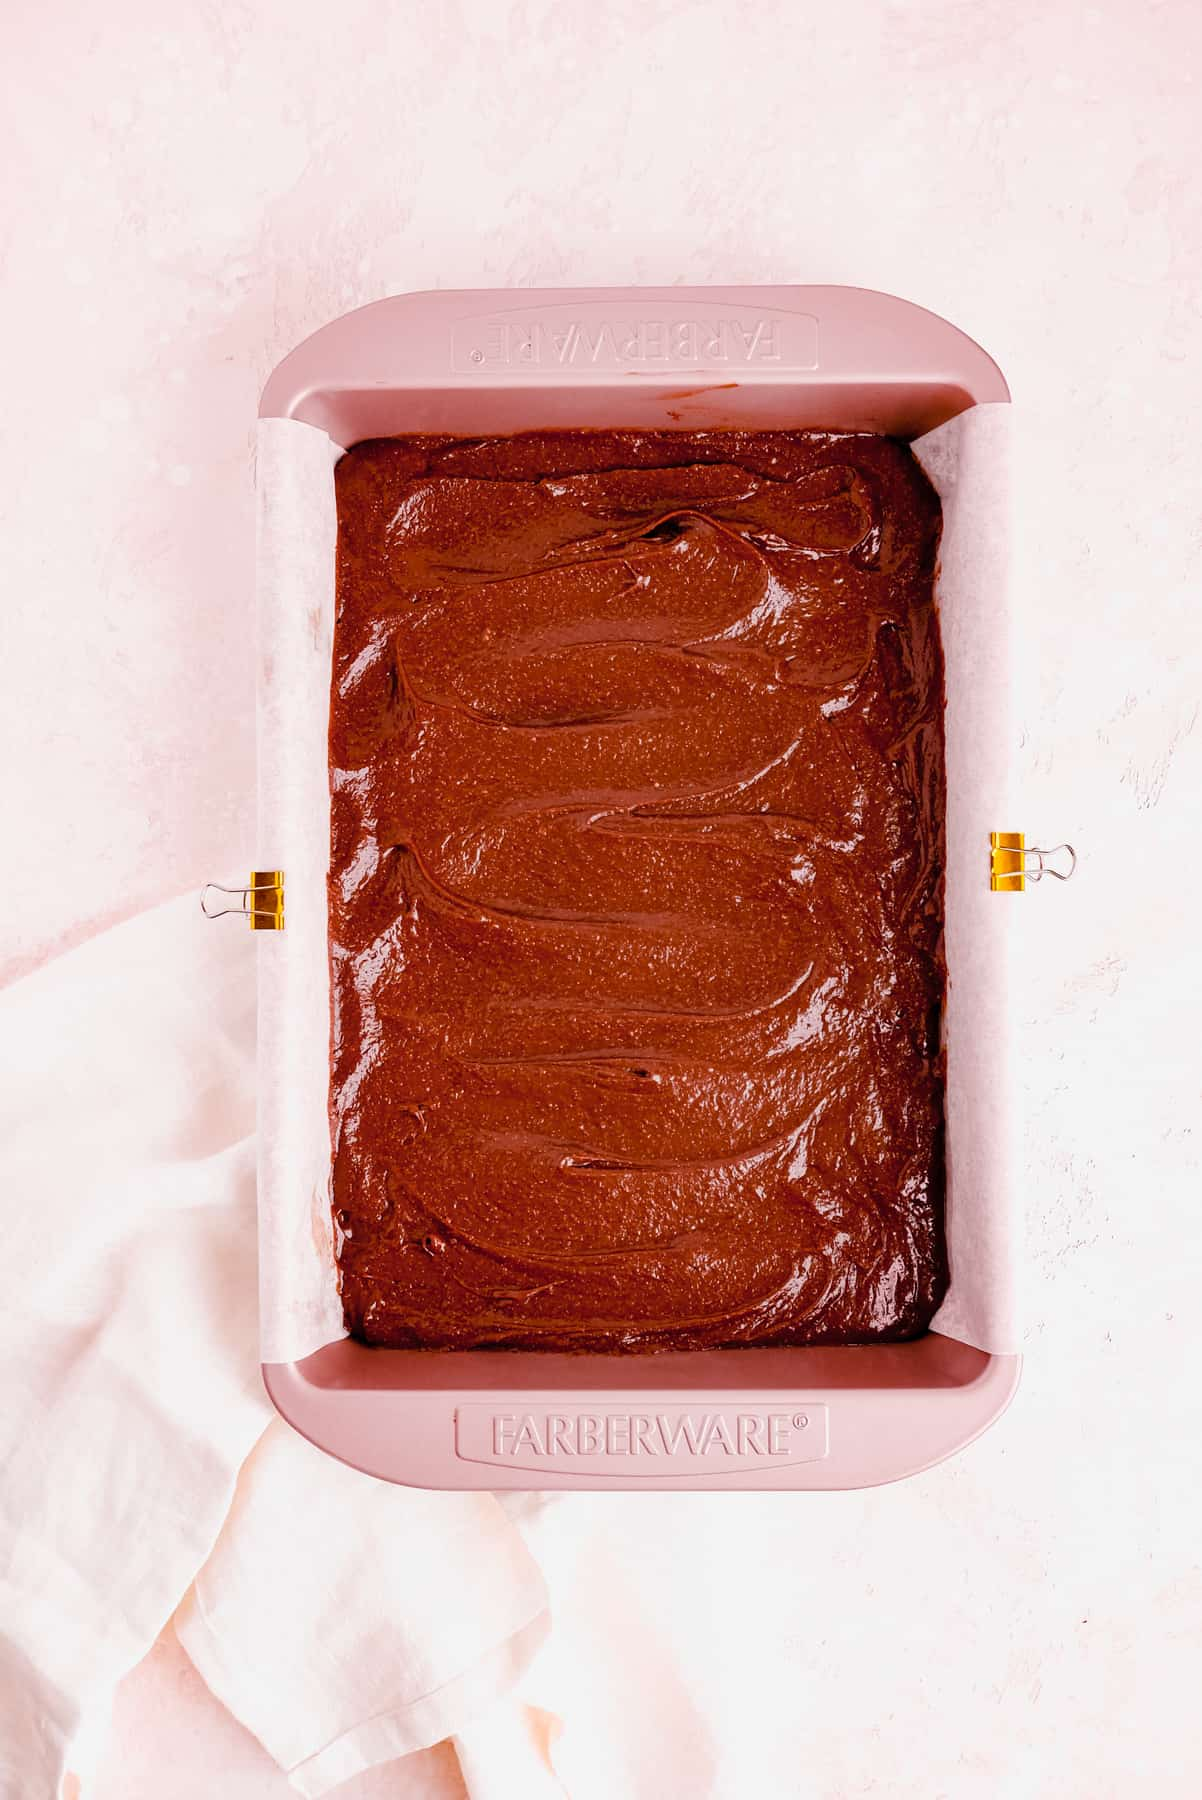 """a 9"""" x 13"""" pan full of fudgy gluten free brownie batter"""